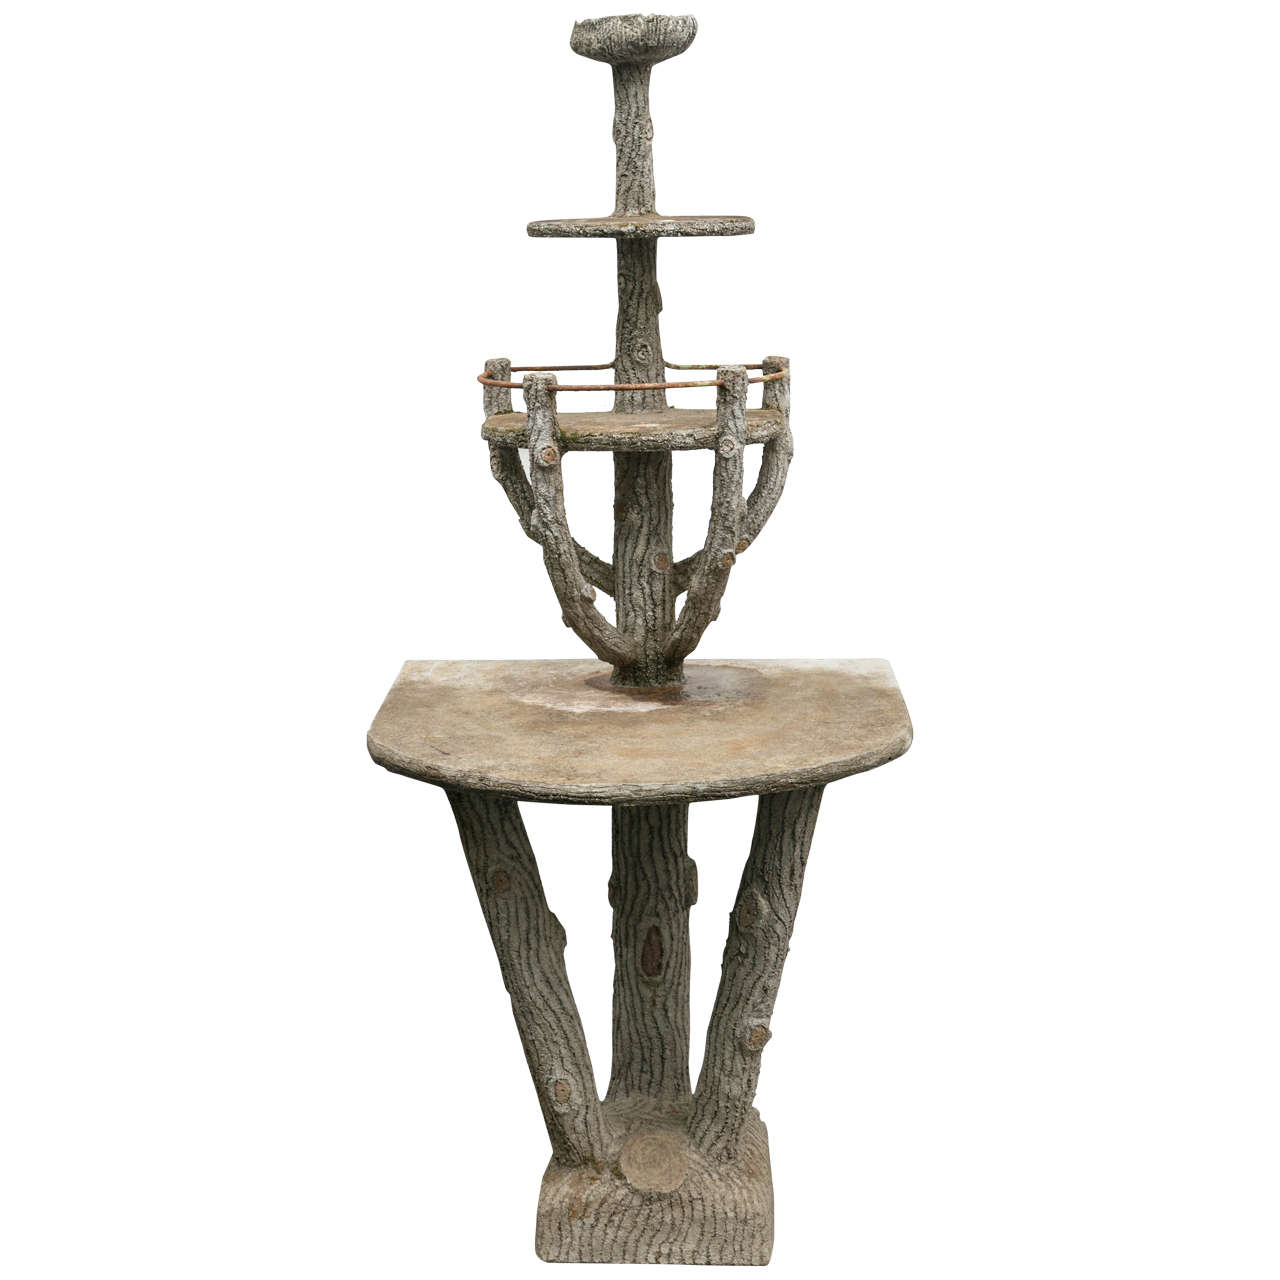 faux bois style cement etagere for sale at 1stdibs. Black Bedroom Furniture Sets. Home Design Ideas